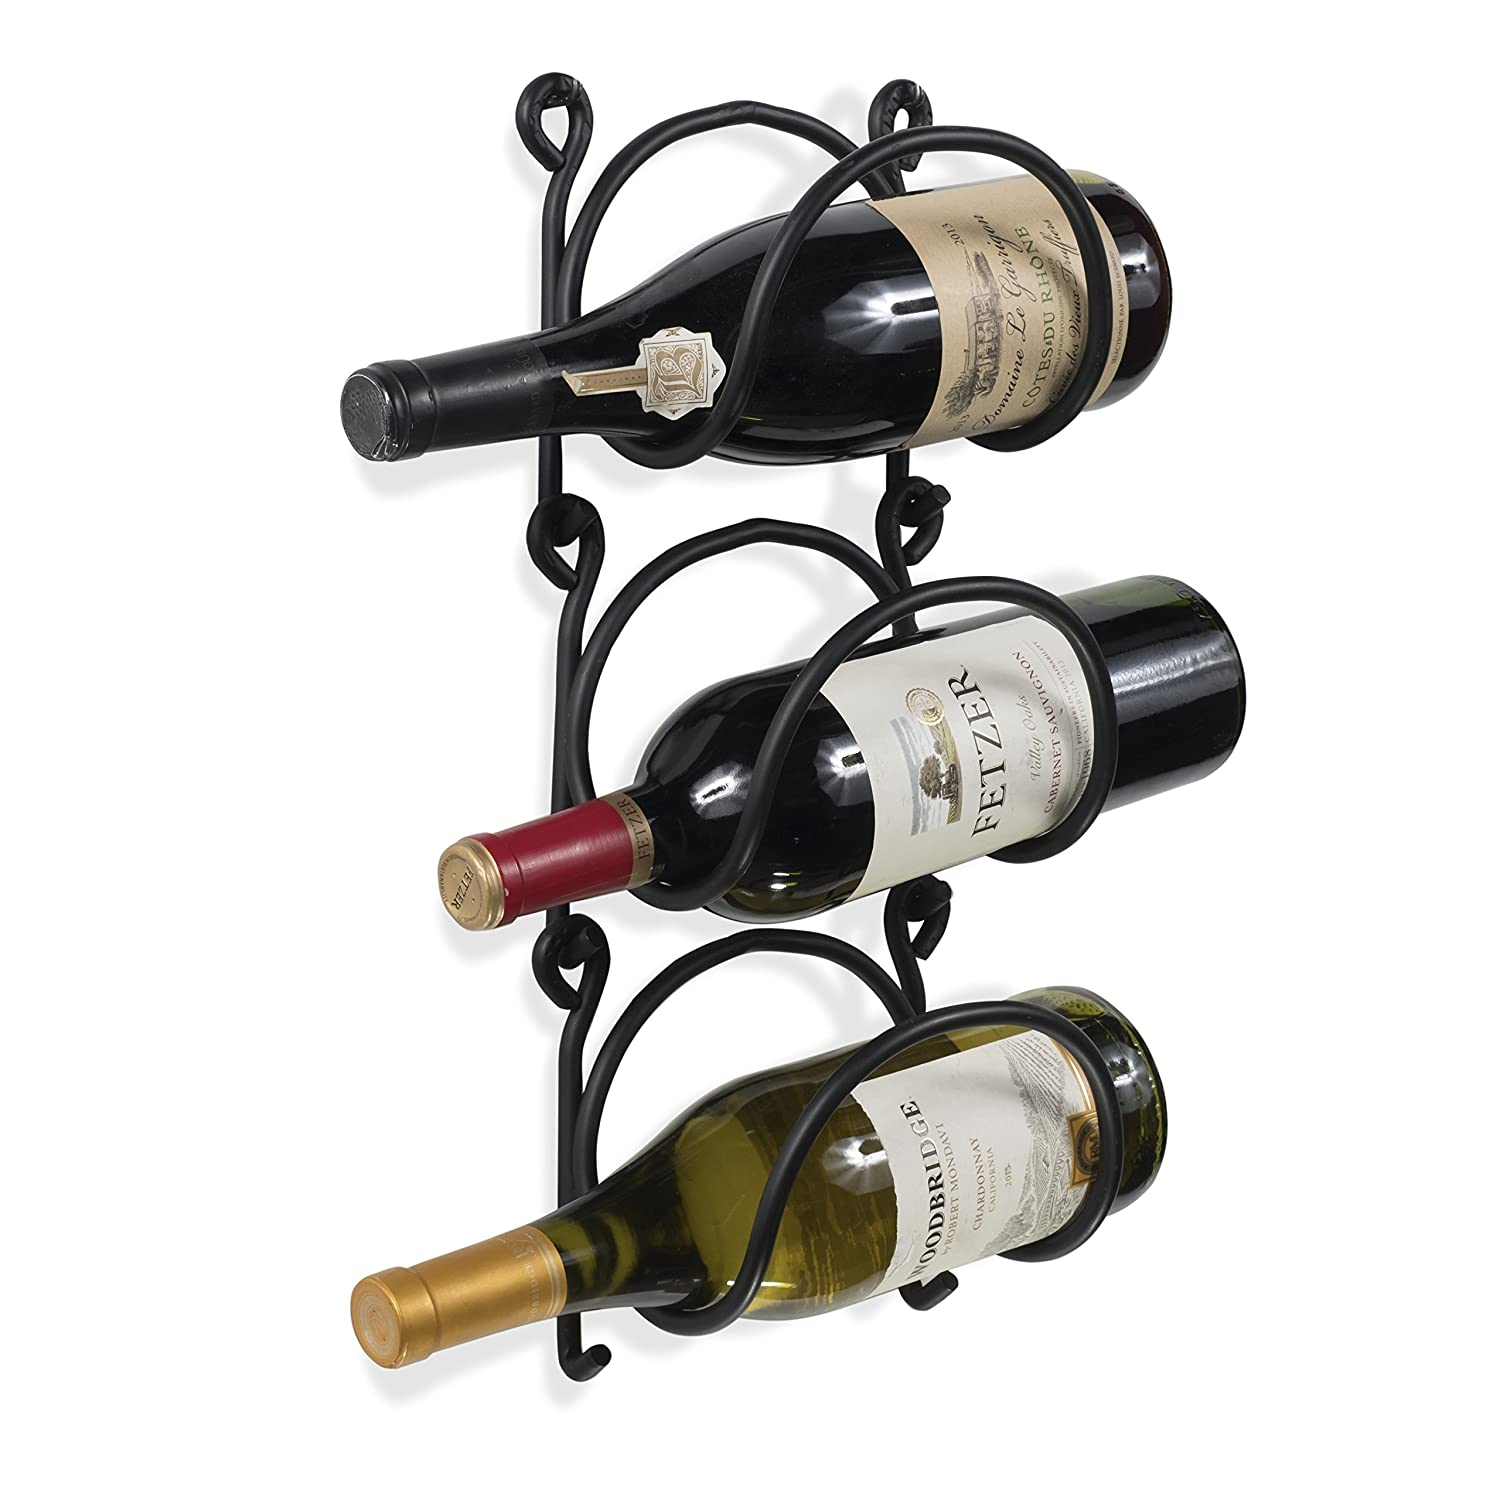 Wallniture Wrought Iron Wine Rack – Wall Mount Bottle Storage Organizer – Rustic Home Decor Set of 3 Rack and Hook